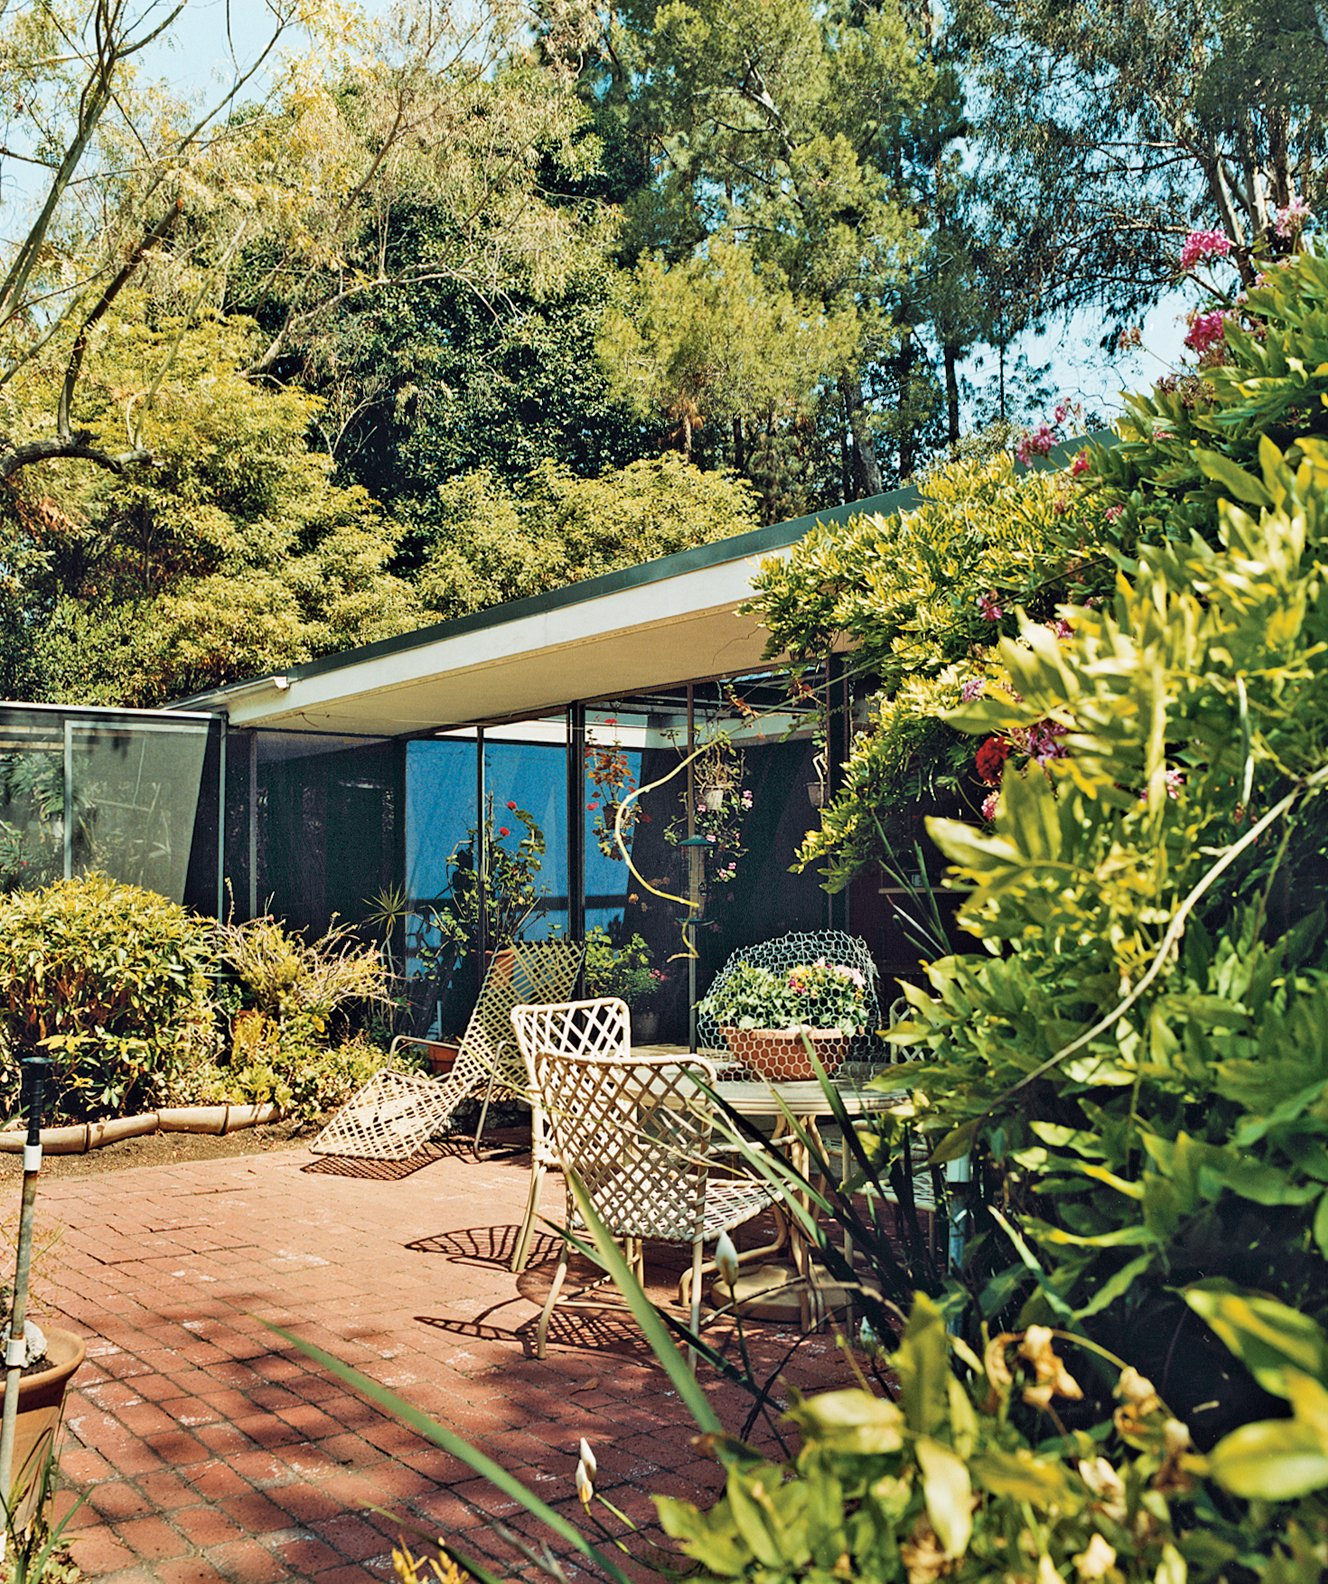 """At Shulman's insistence, Soriano created a screened area that protects the gardenside elevation of the house from, says the photographer, """"excessive wind and glaring light. In hot weather, when I have the sliding glass doors open, I close the screens on the sides—otherwise it's all open to the coyotes and raccoons."""" In keeping with the off-the-shelf ethic of the Case Study era, Soriano used simple, durable materials that, after 57 years, remain intact.  Photo 3 of 4 in True Hollywood Story"""